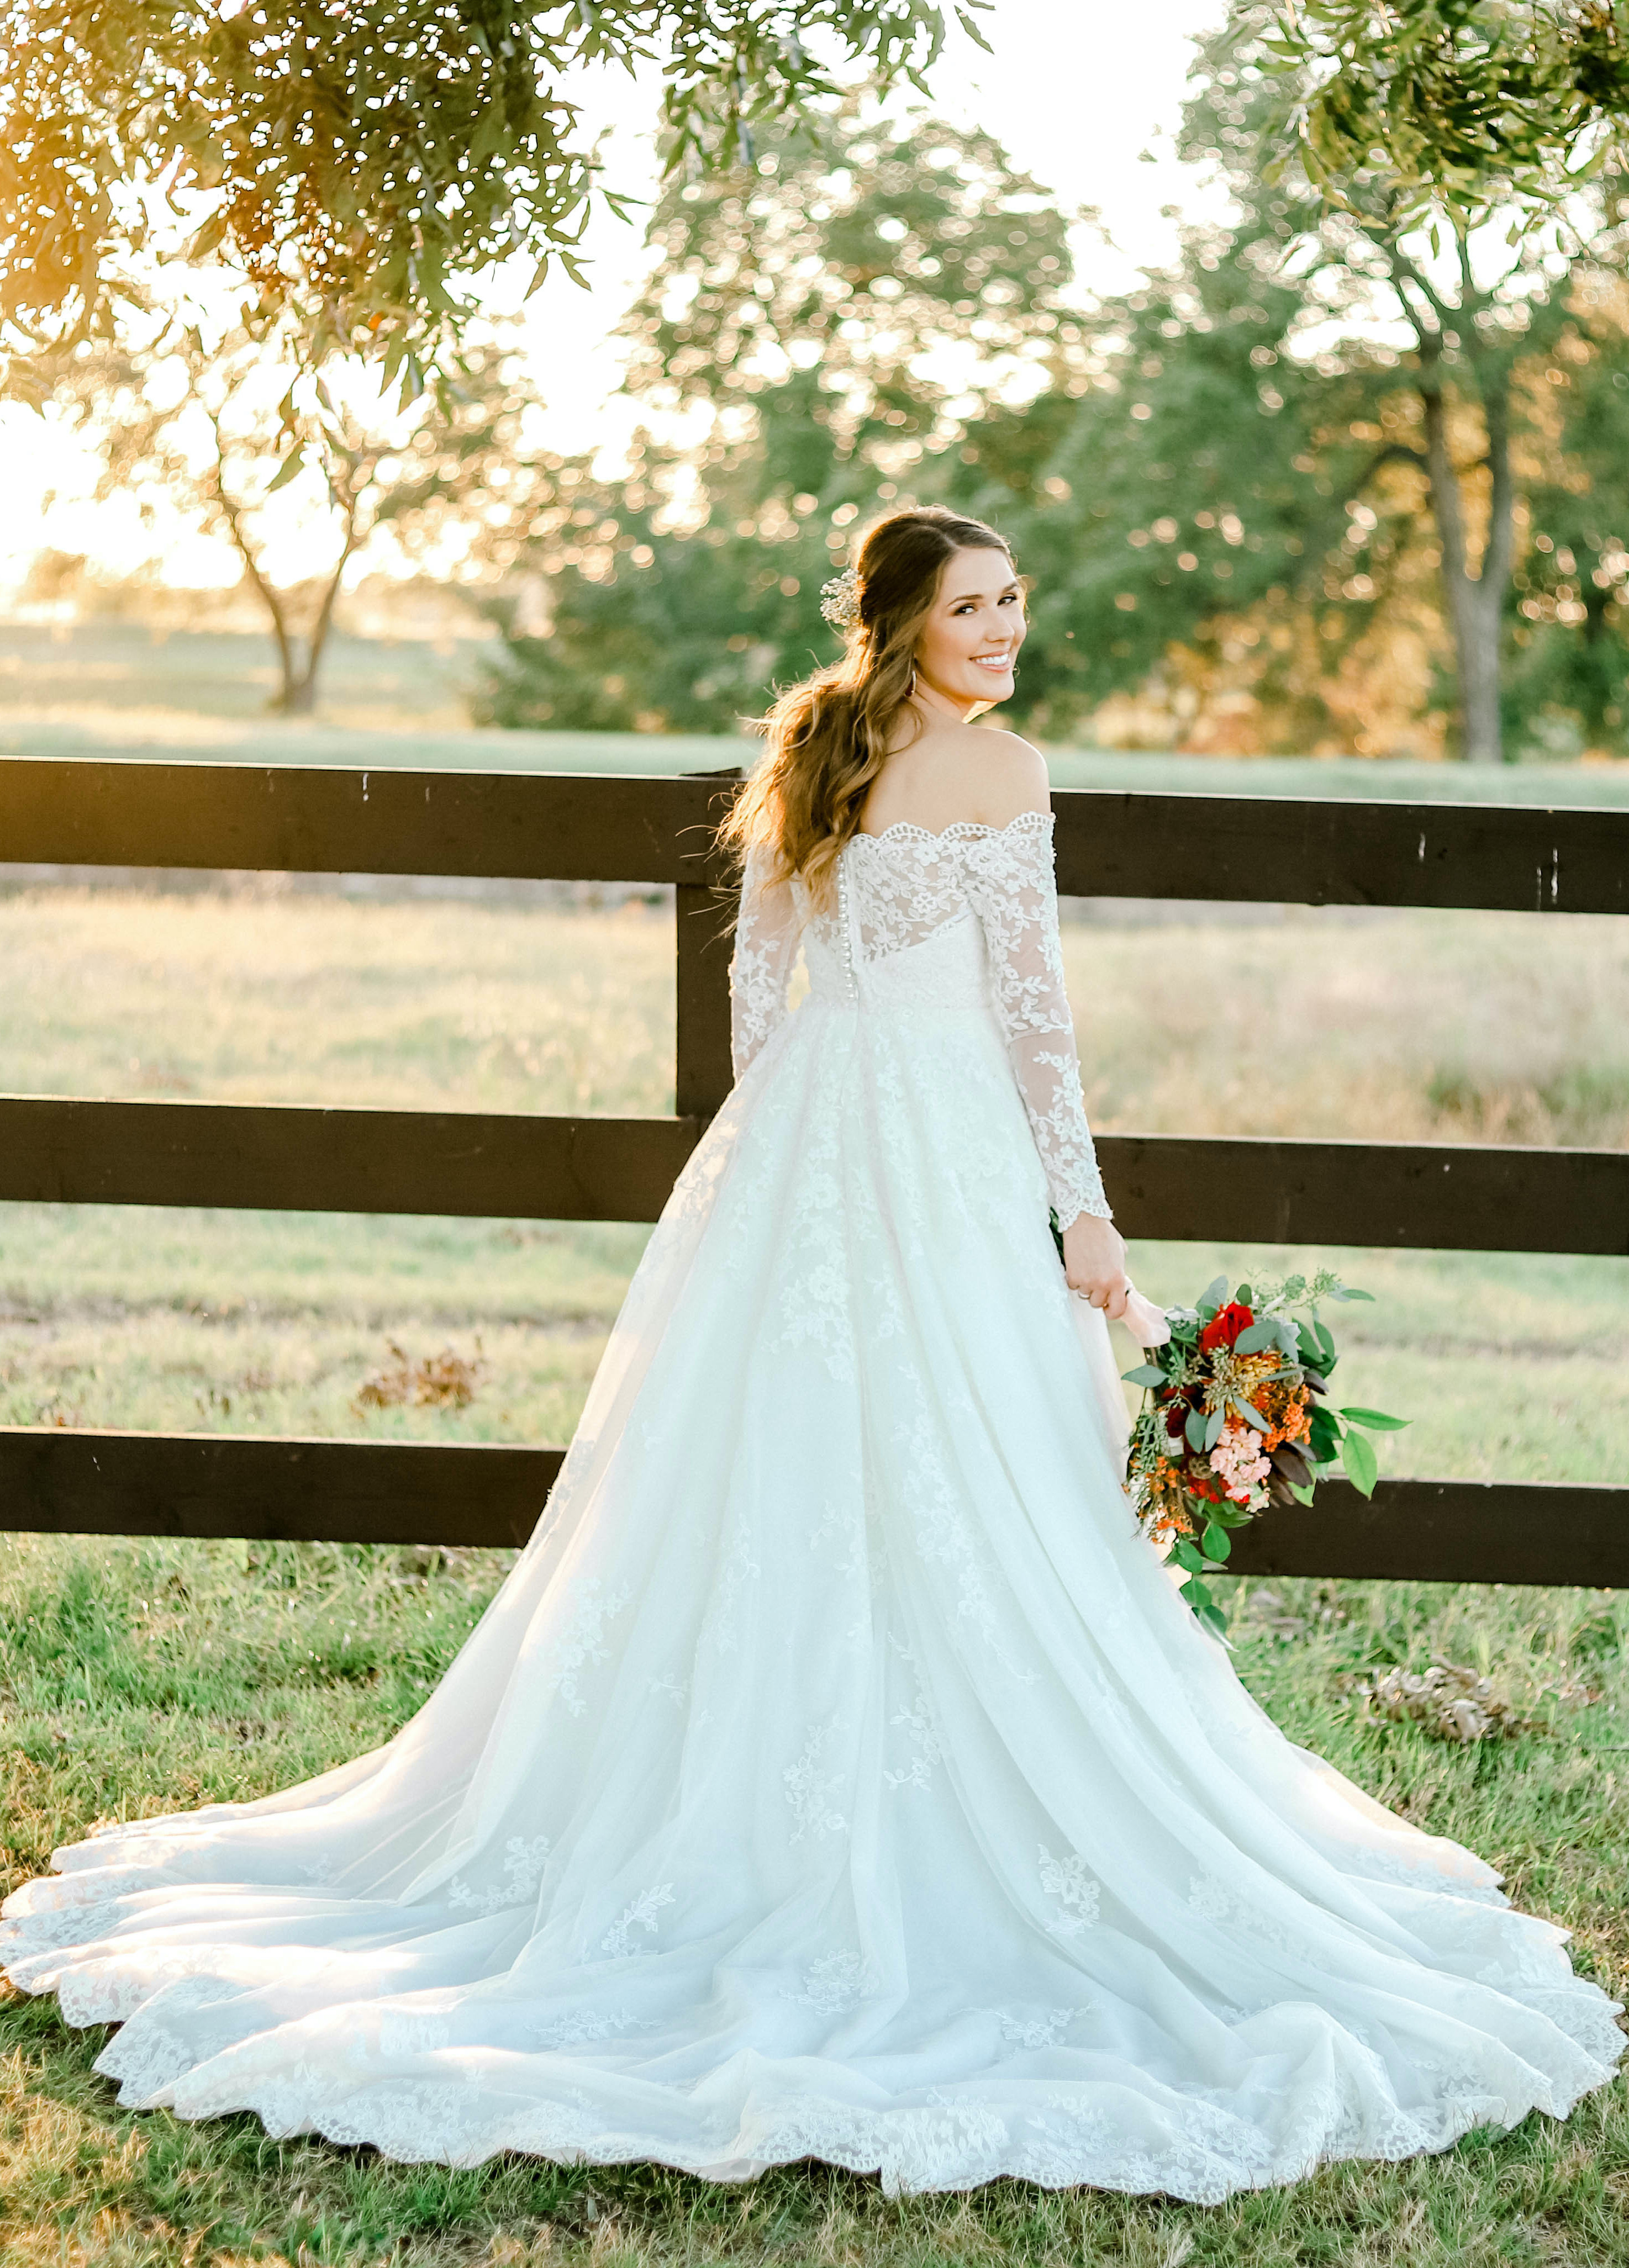 This bride designed an A-line wedding dress with lace long sleeves online with Anomalie.